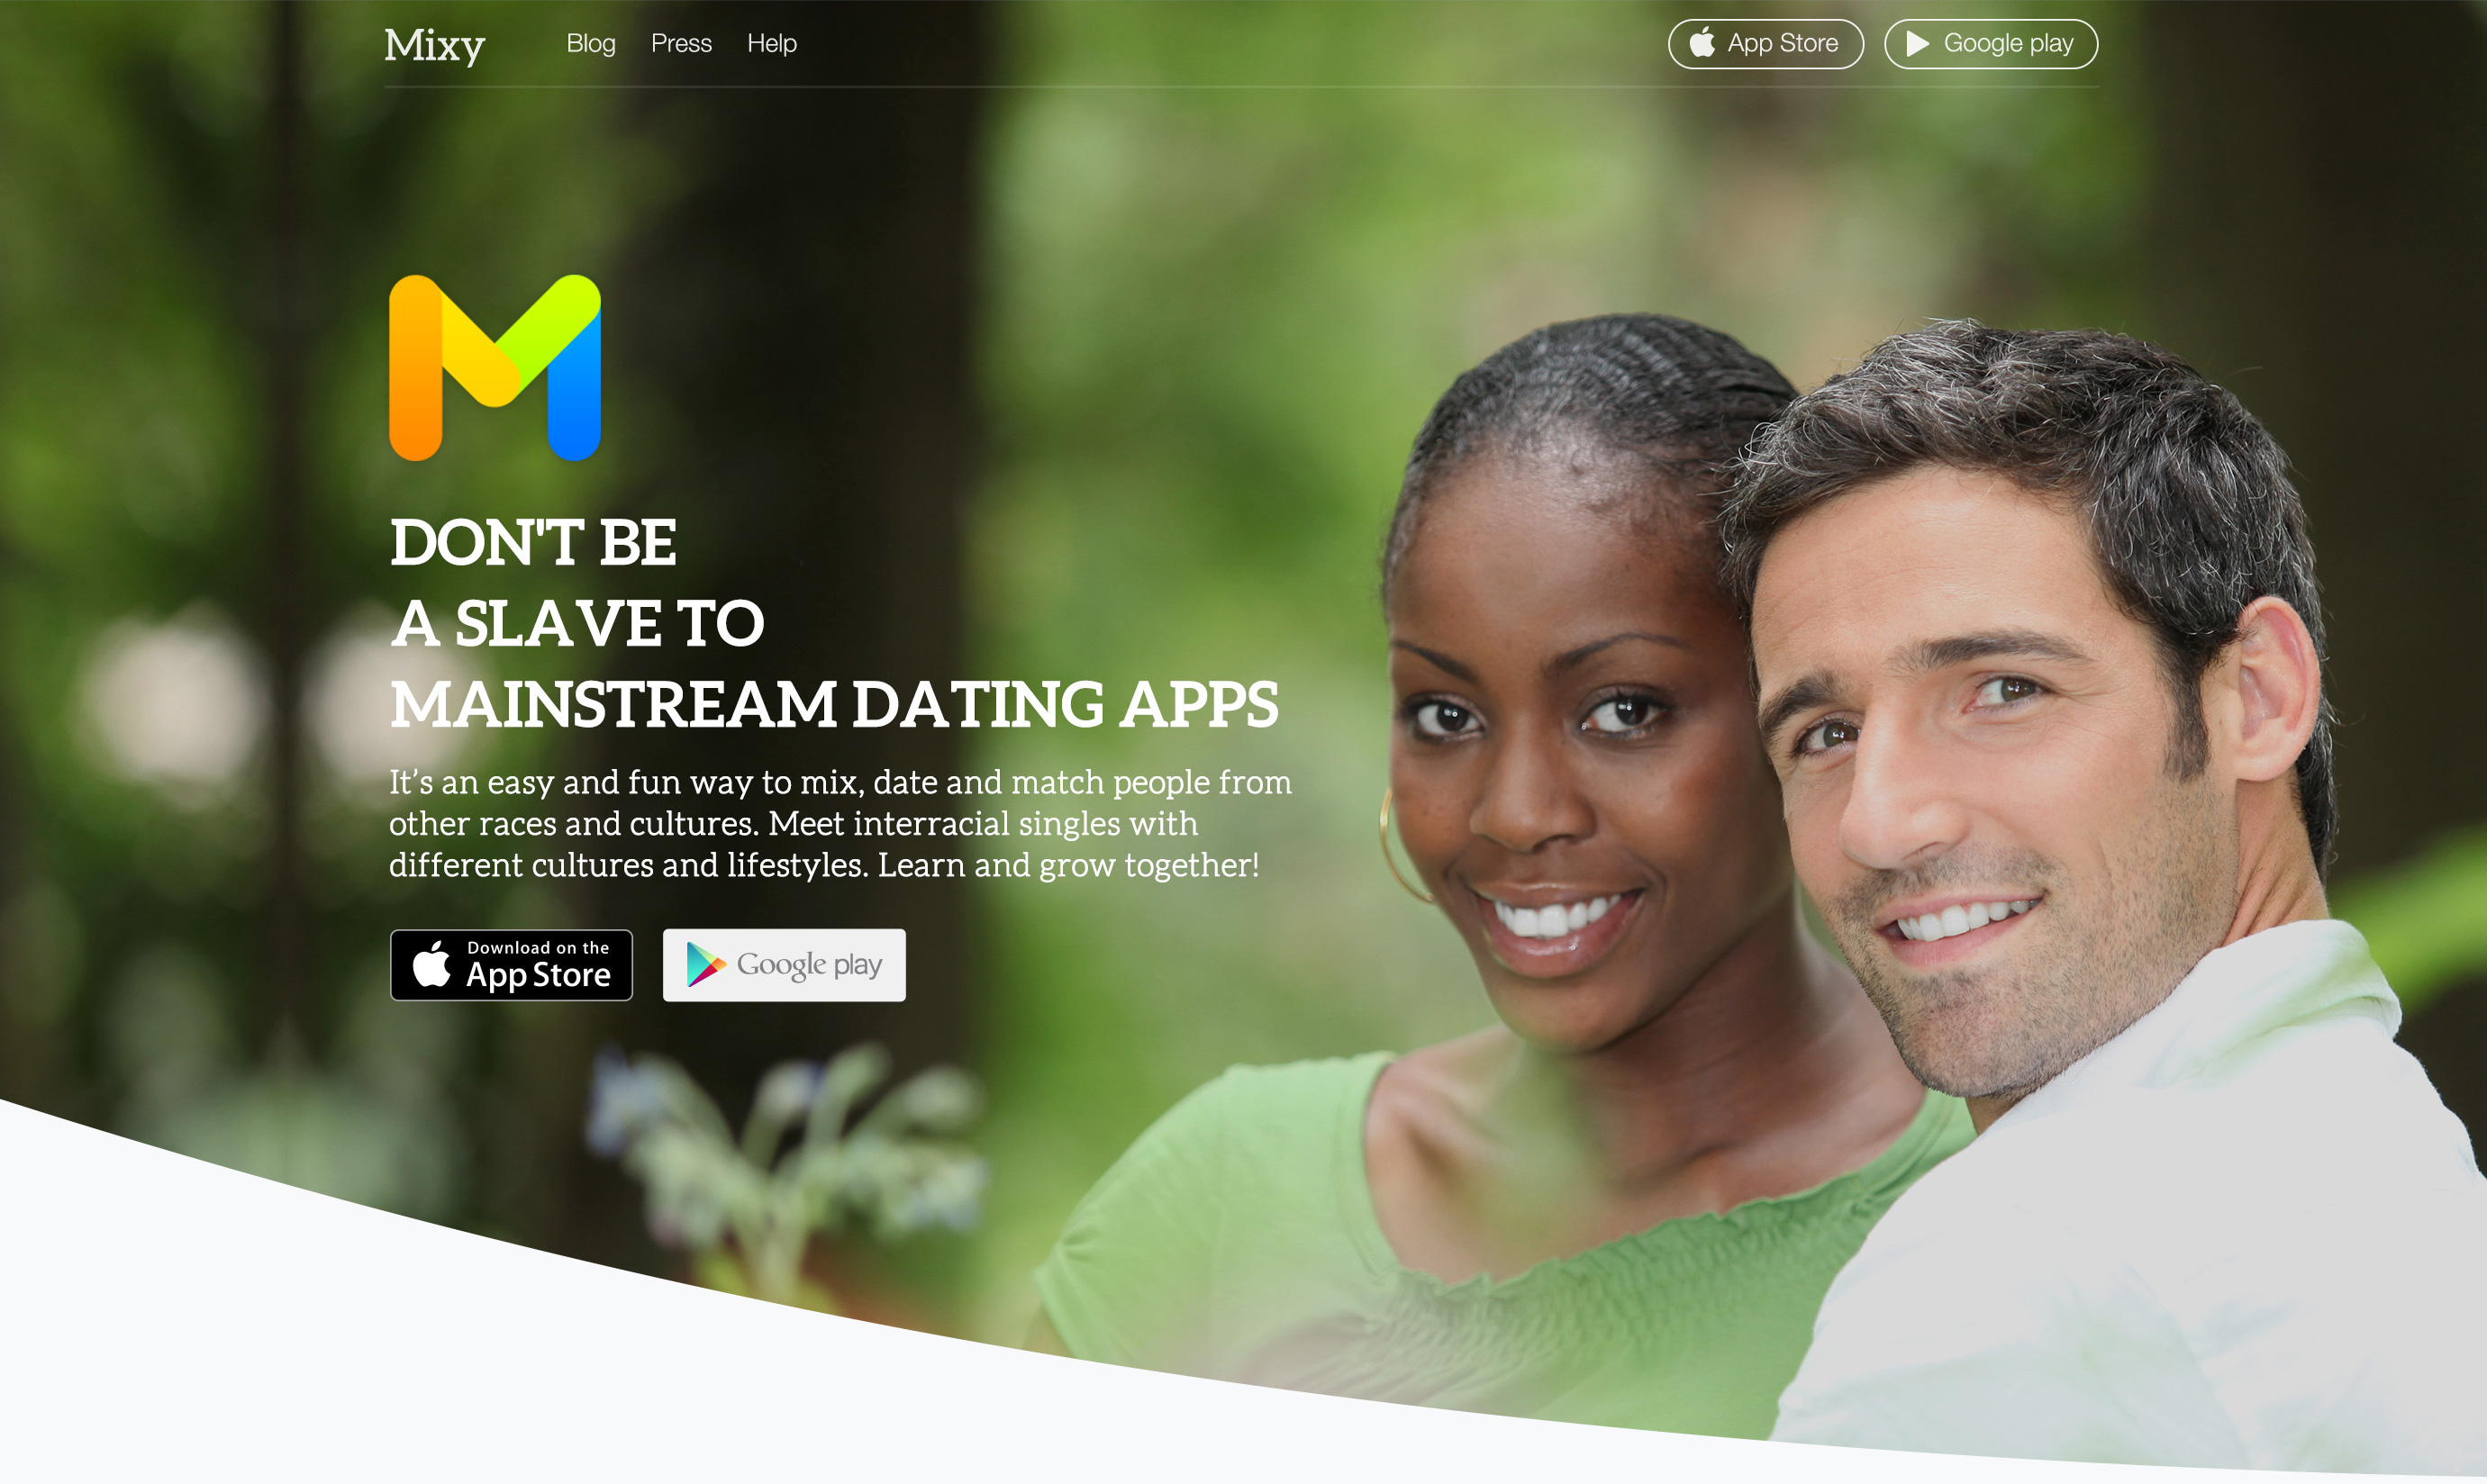 interracial dating articles 2015 Interracial relationships are a majority 61% approve of interracial marriage and 93% favor multiracial dating aja frost is a senior at cal poly.